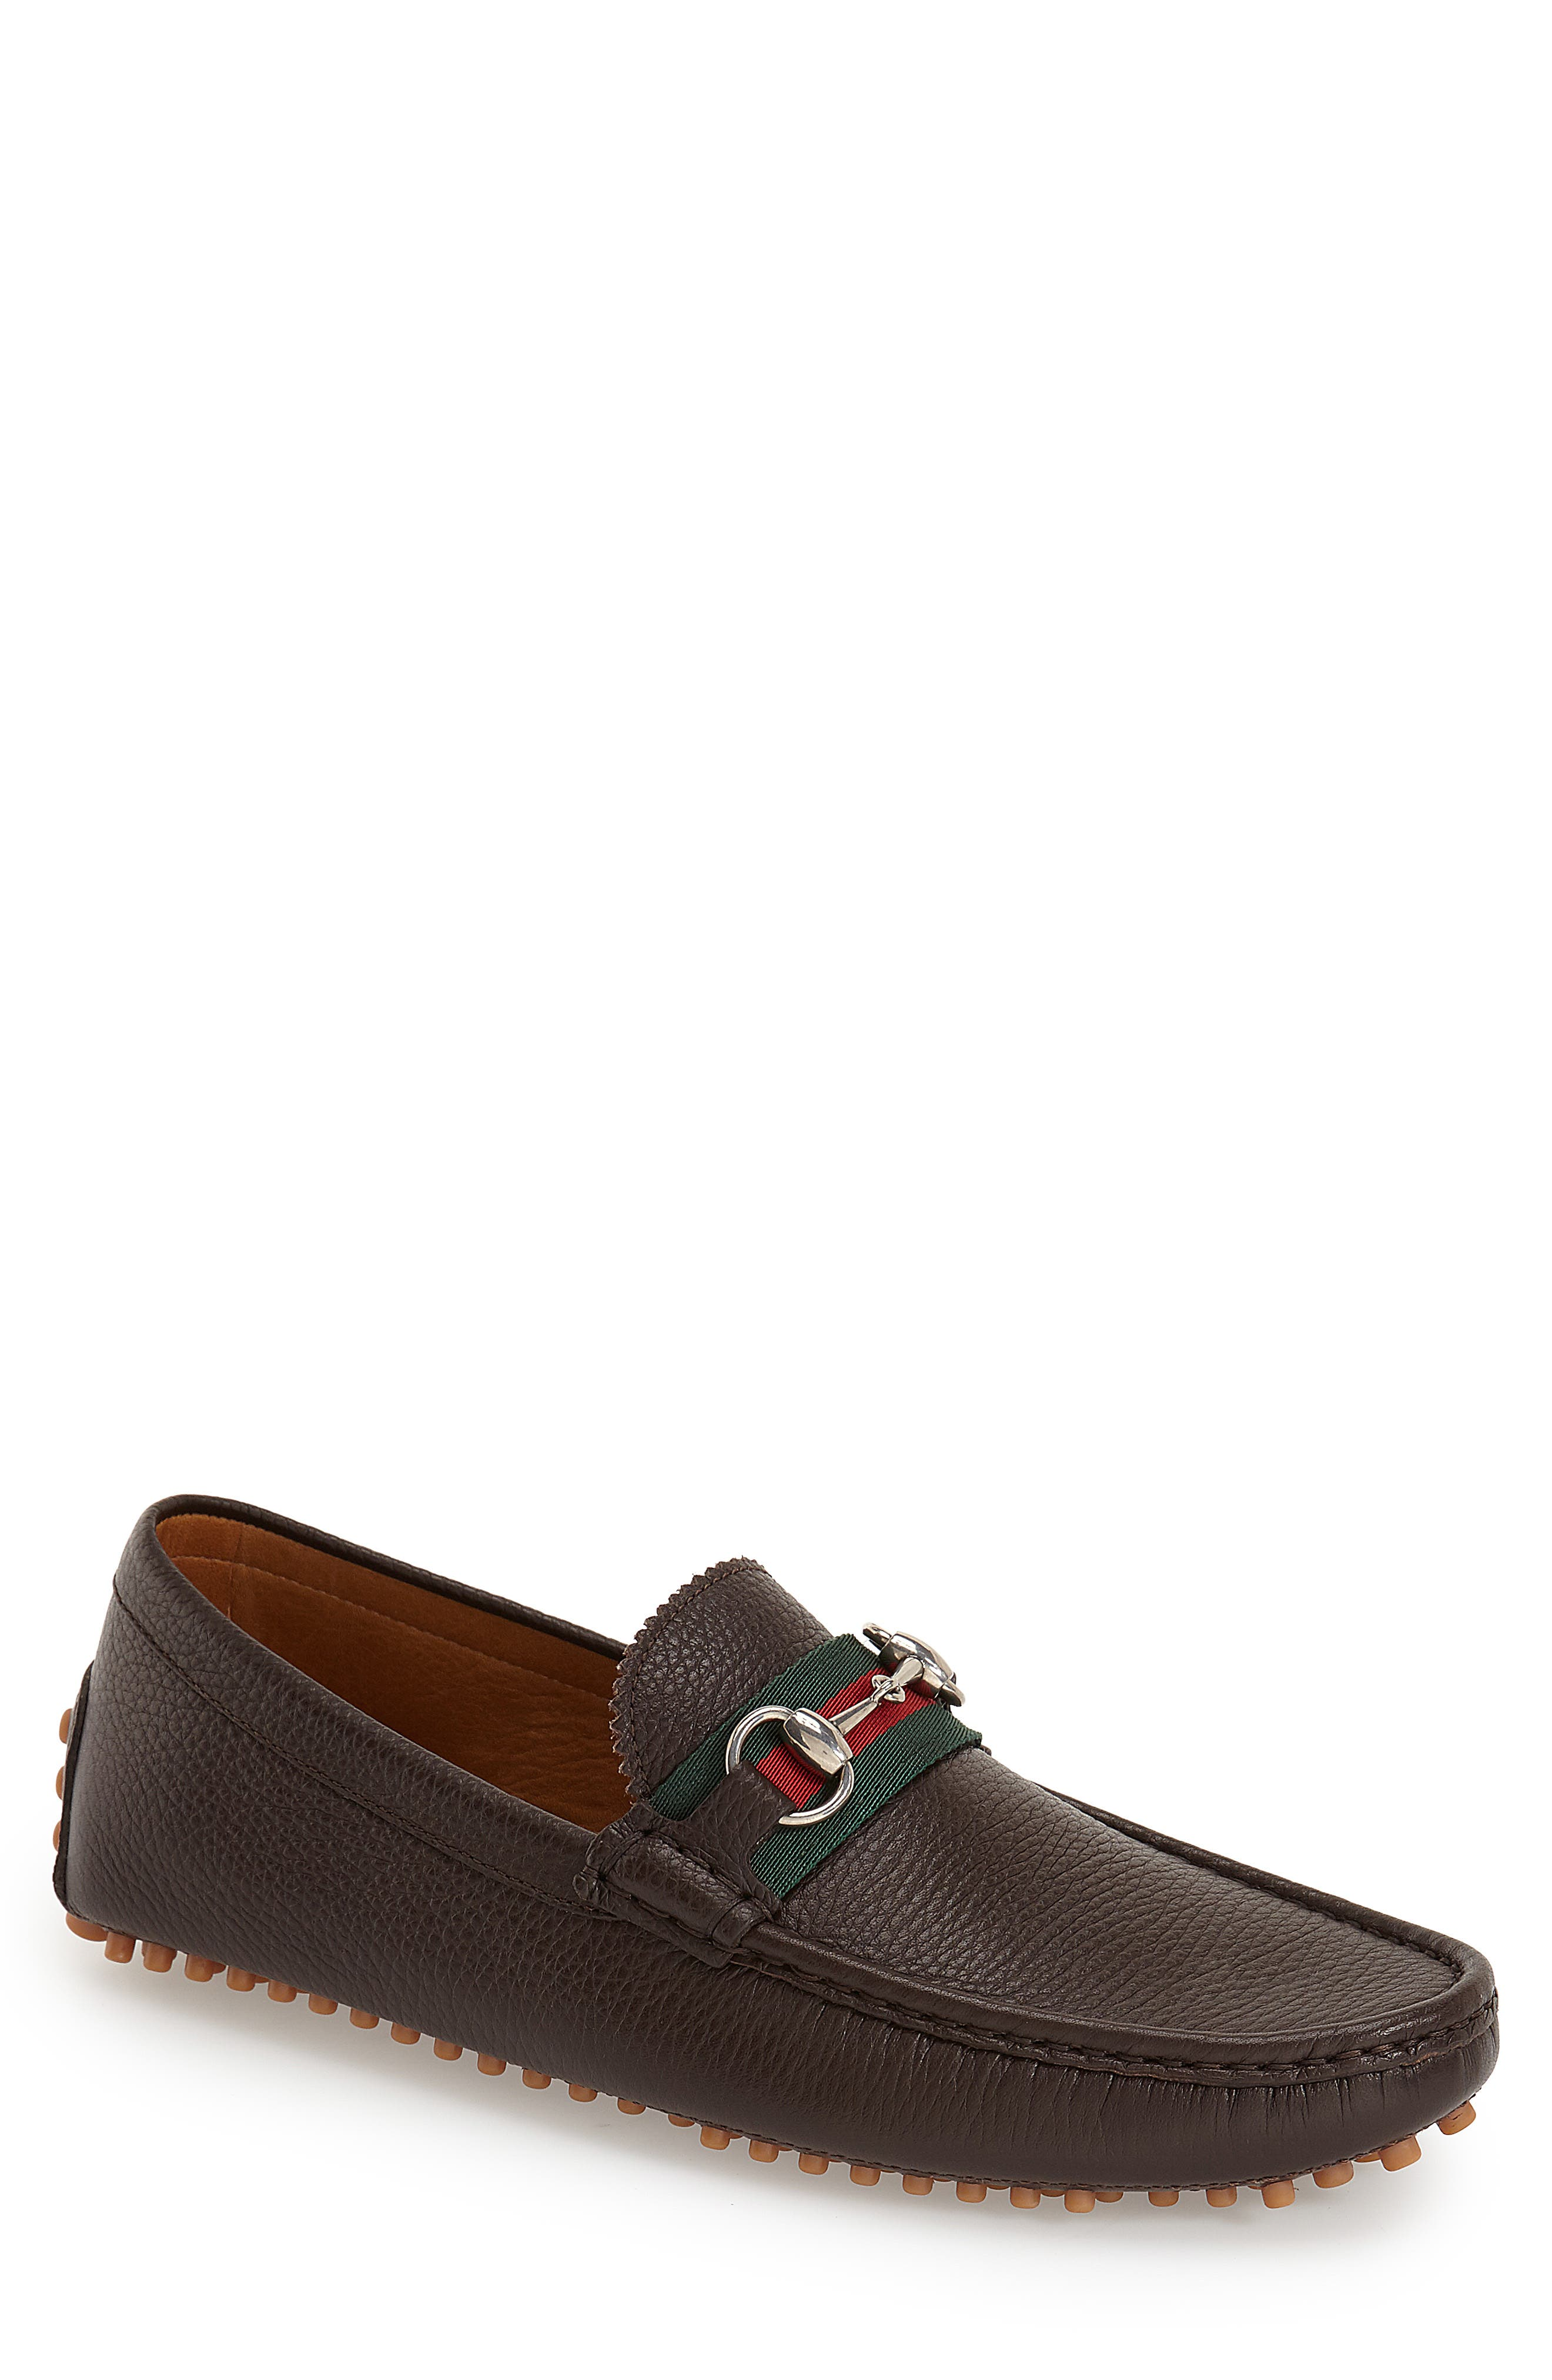 Alternate Image 1 Selected - Gucci 'Damo' Driving Shoe (Men)